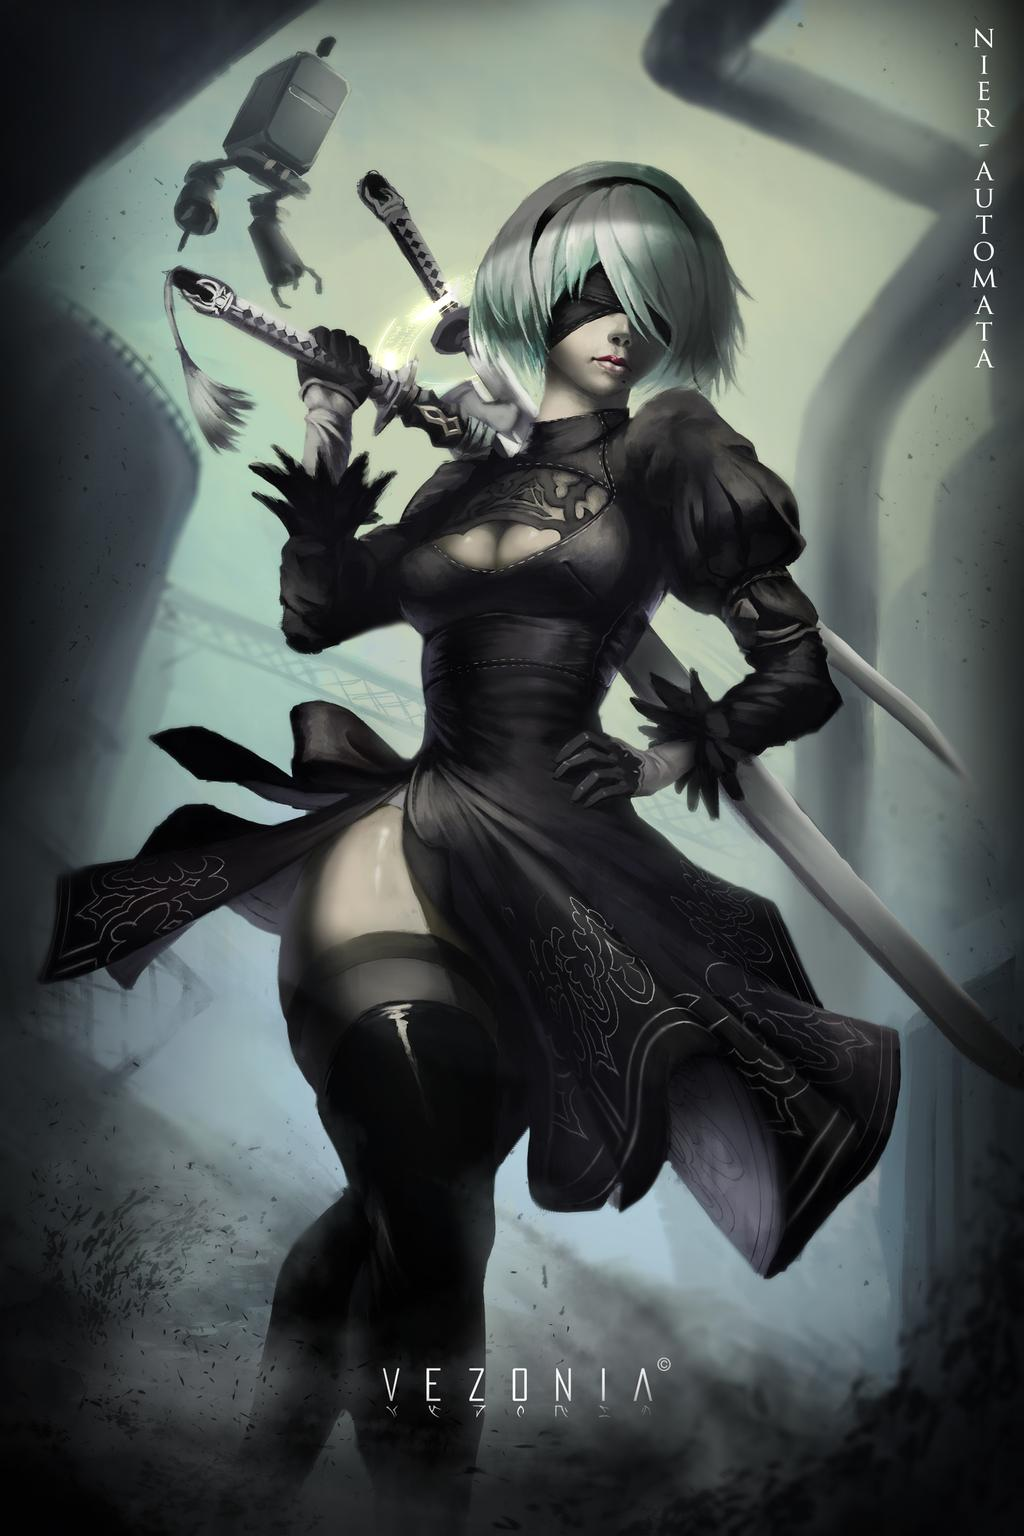 Nier Automata Wallpaper Iphone Posted By Sarah Tremblay